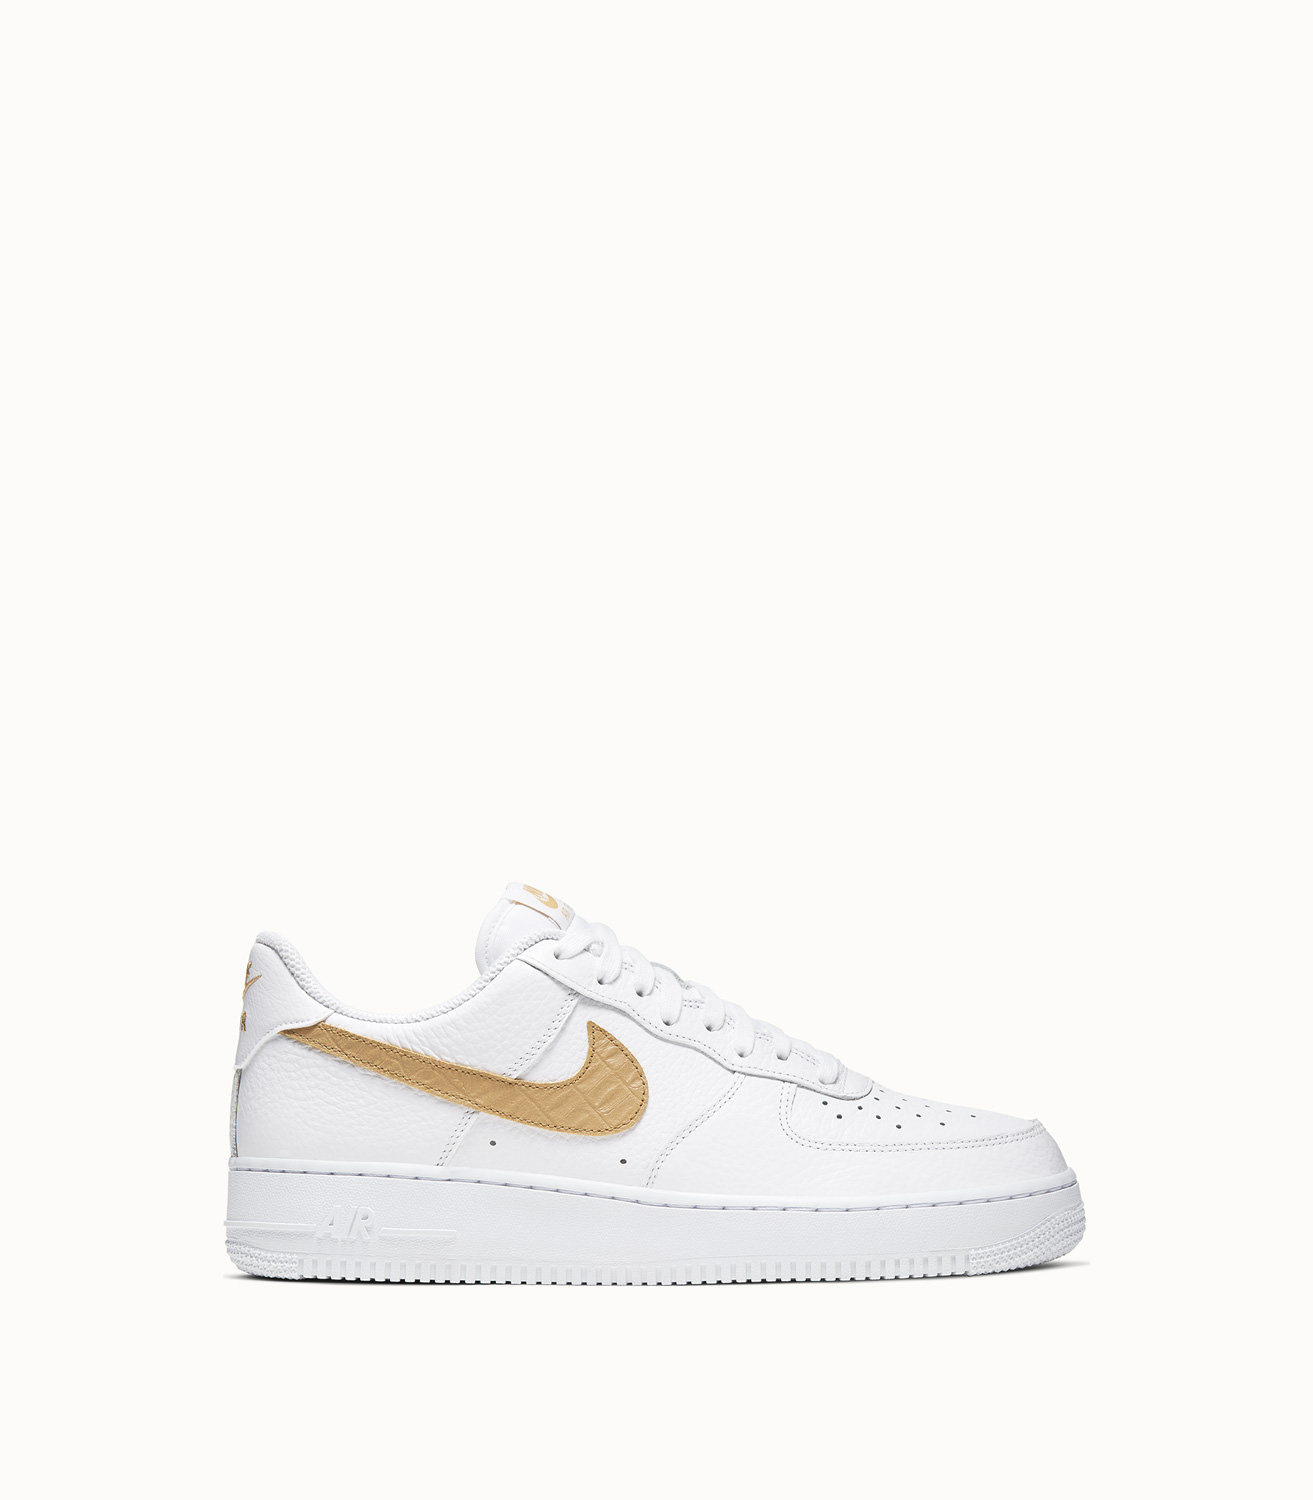 SNEAKERS AIR FORCE 1 LV8 COLORE BIANCO